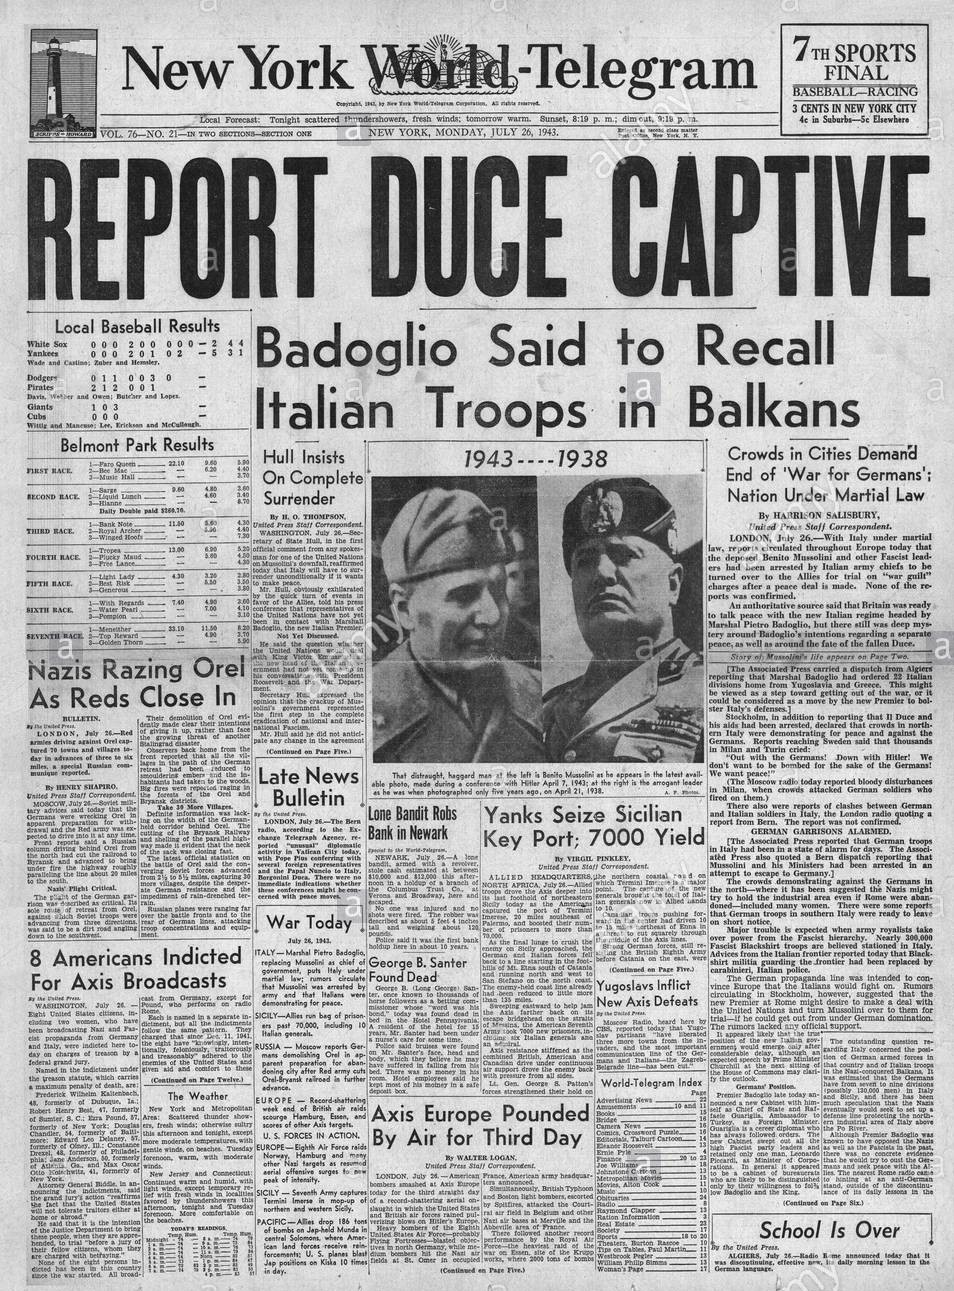 1943-new-york-world-telegram-front-page-reporting-arrest-of-mussolini-e5gdrw